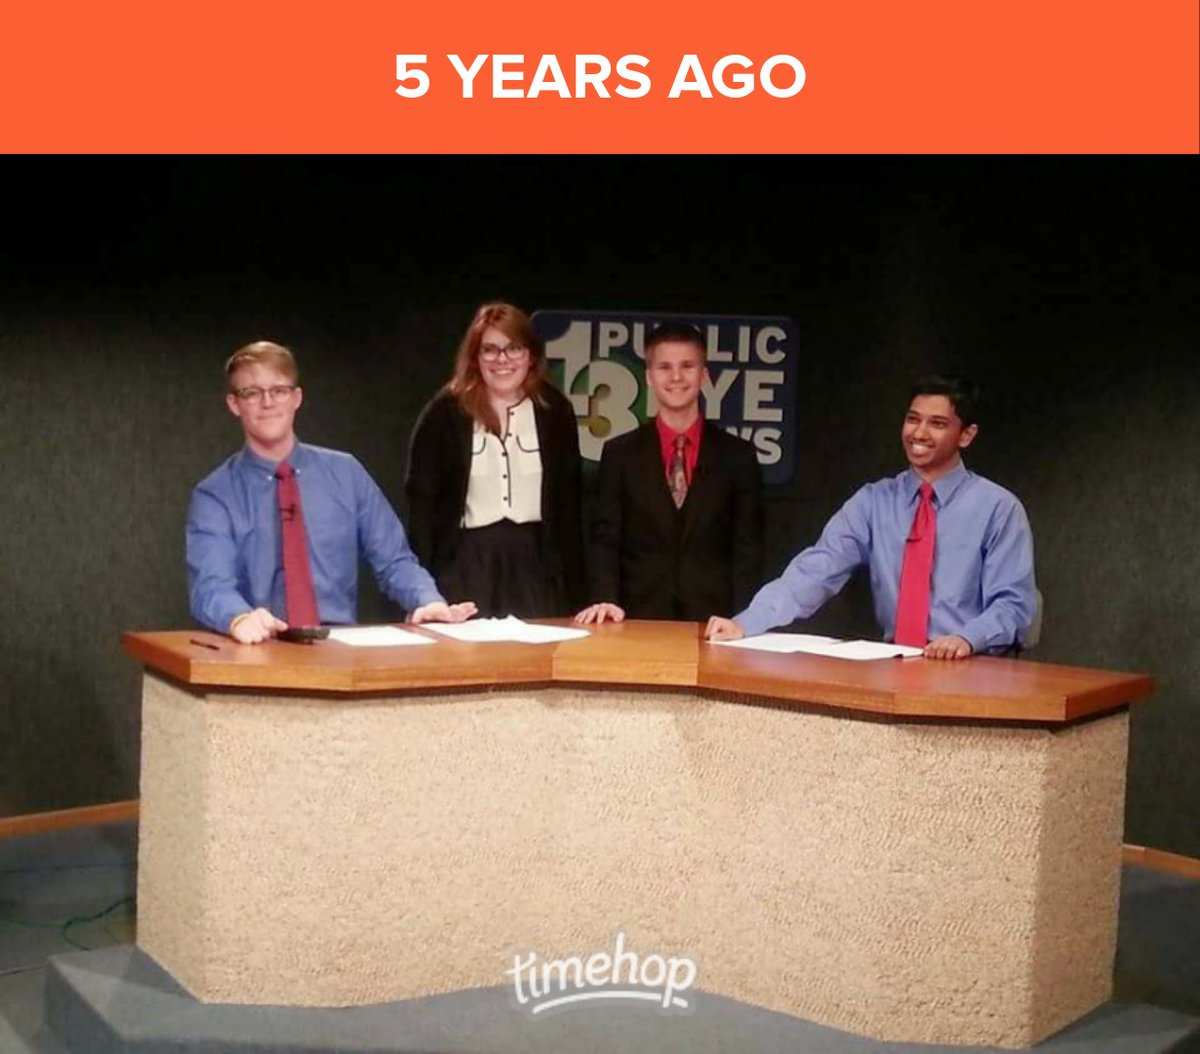 Feeling sentimental today. Dane 5 years ago had no idea he'd be doing this as a career right out of college. Pinch me! #thatnewslife #newsanchor #newsreporter #PublicEyeNews #KVALNewspic.twitter.com/iZnLnVY01R